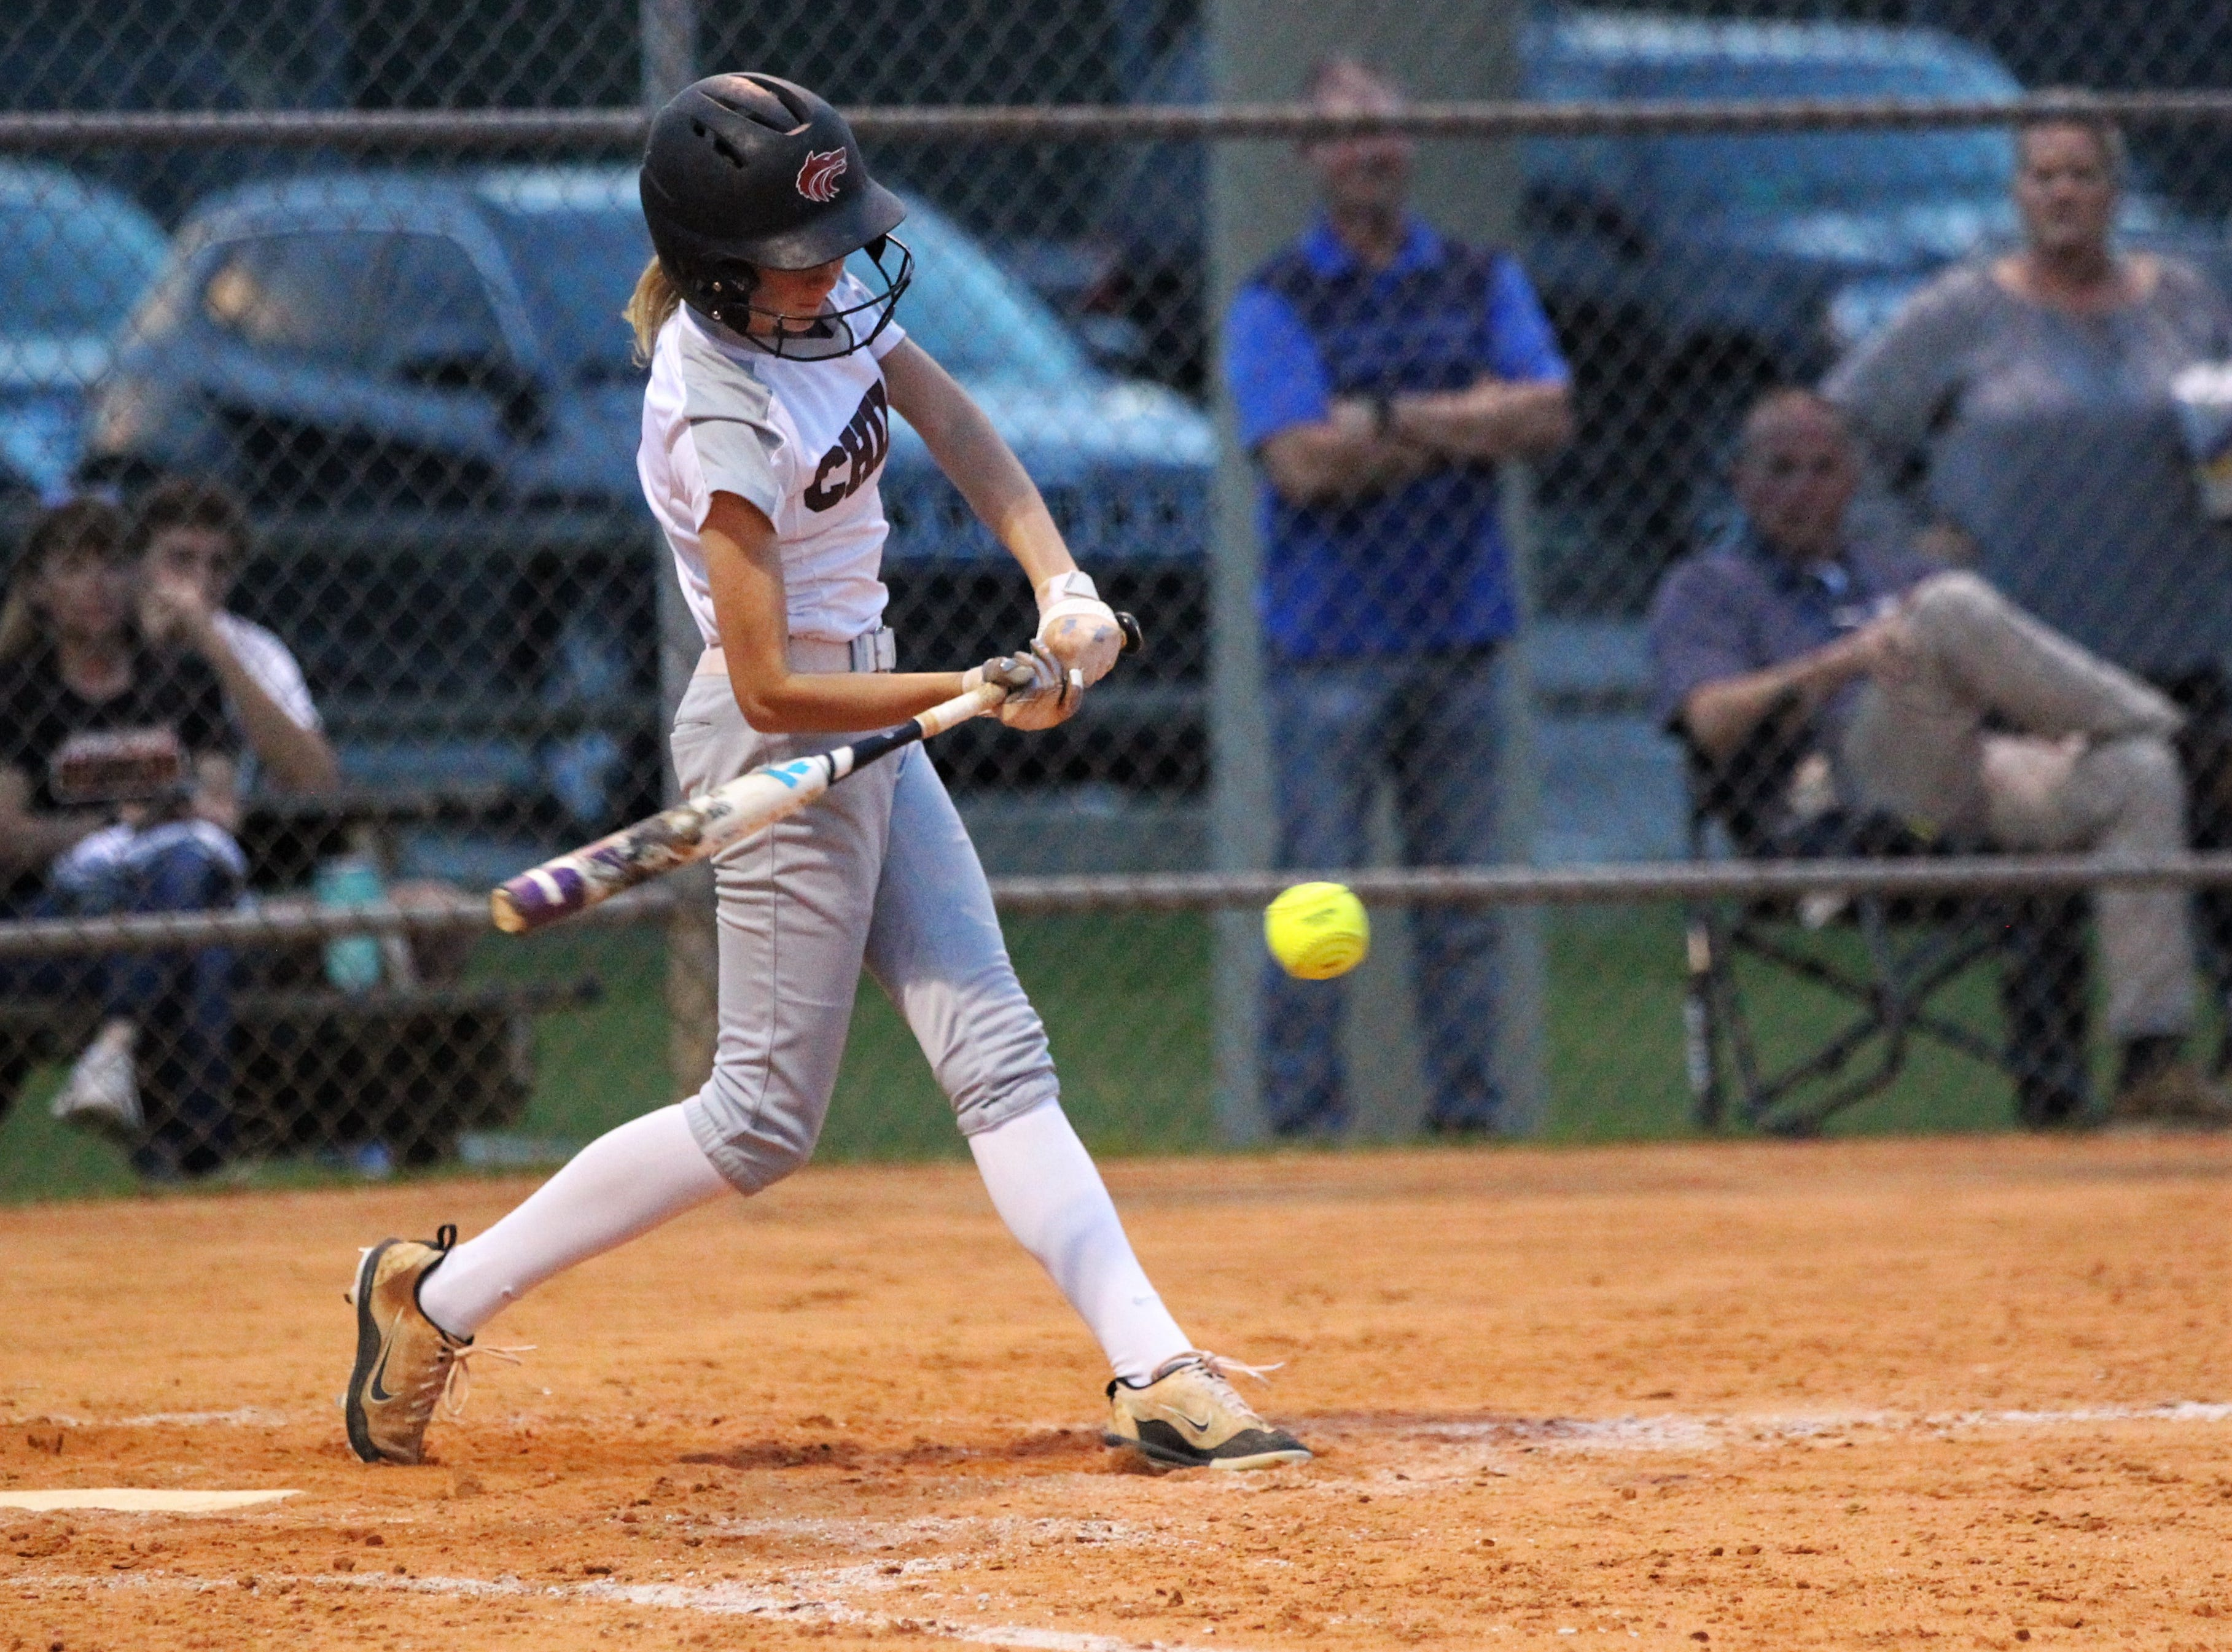 Chiles sophomore Izabella Howard bats as the Timberwolves beat Atlantic Coast 6-4 during a Region 1-8A quarterfinal softball game on Wednesday, May 8, 2019.